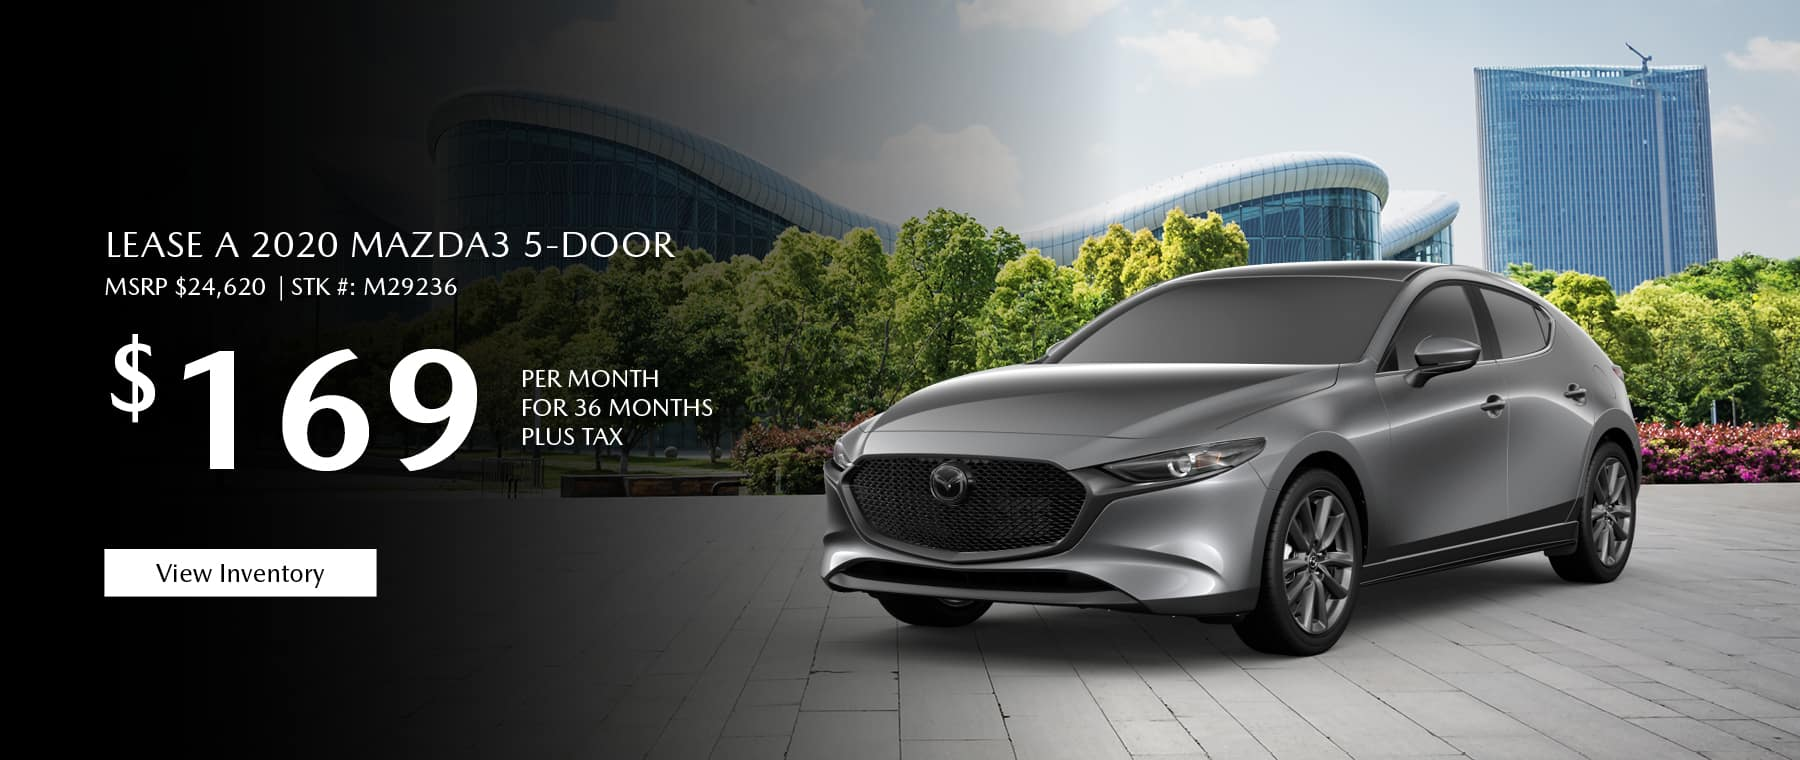 Lease the 2020 Mazda3 hatchback for $169 per month, plus tax.